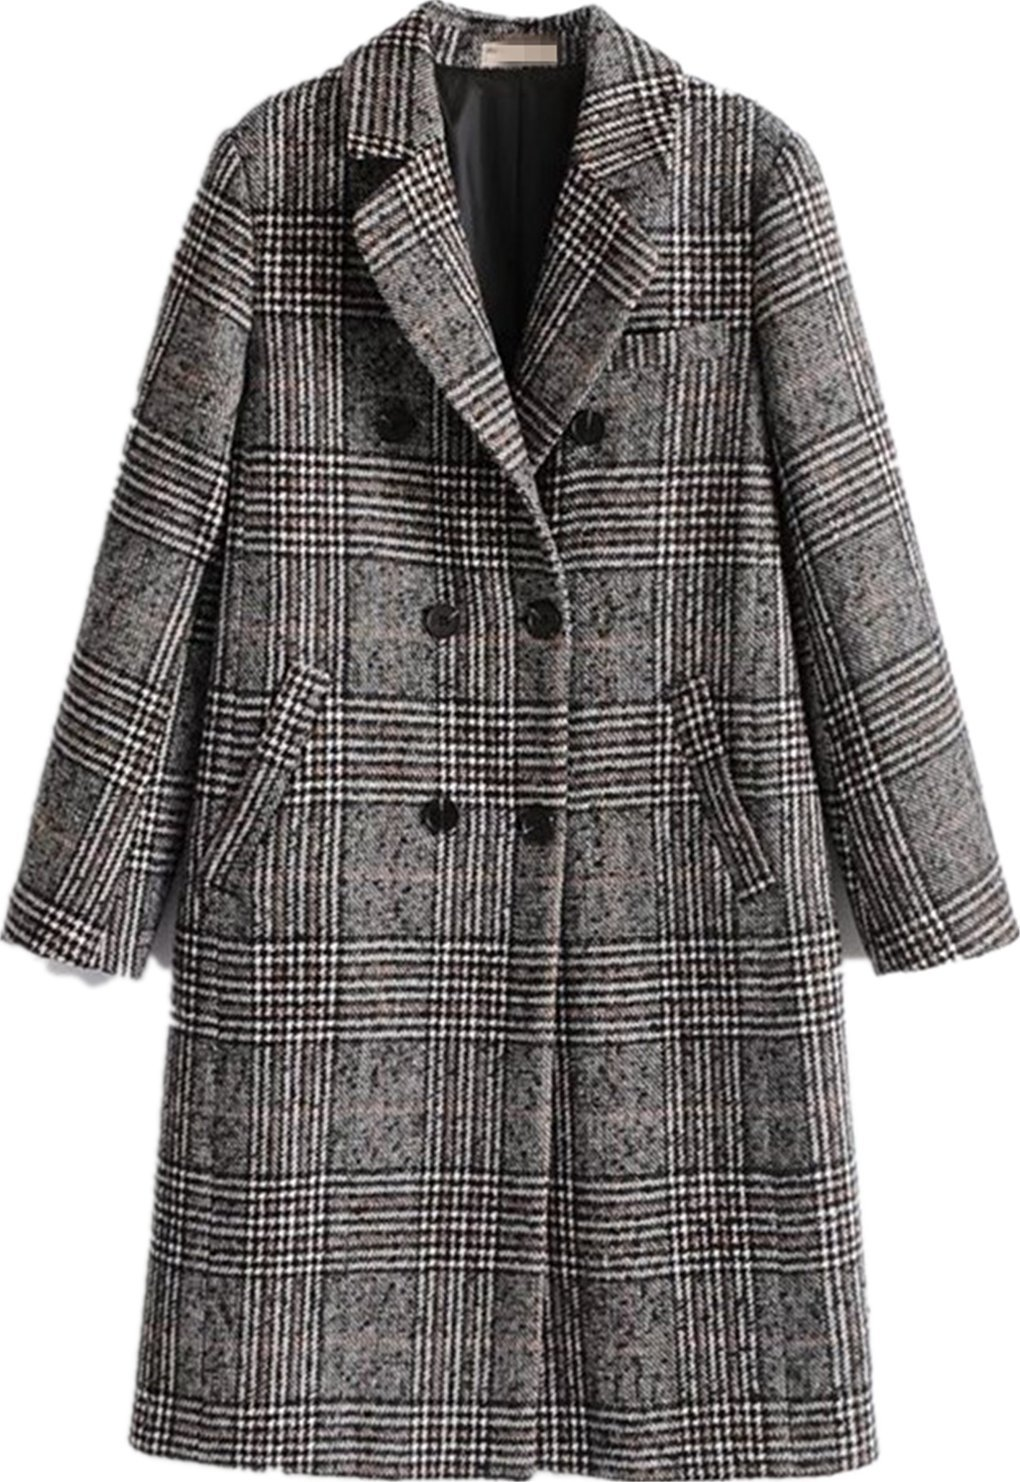 Face Dream Women Winter Plaid Overcoat Double Breasted Woolen Long Coat Grey by Face Dream